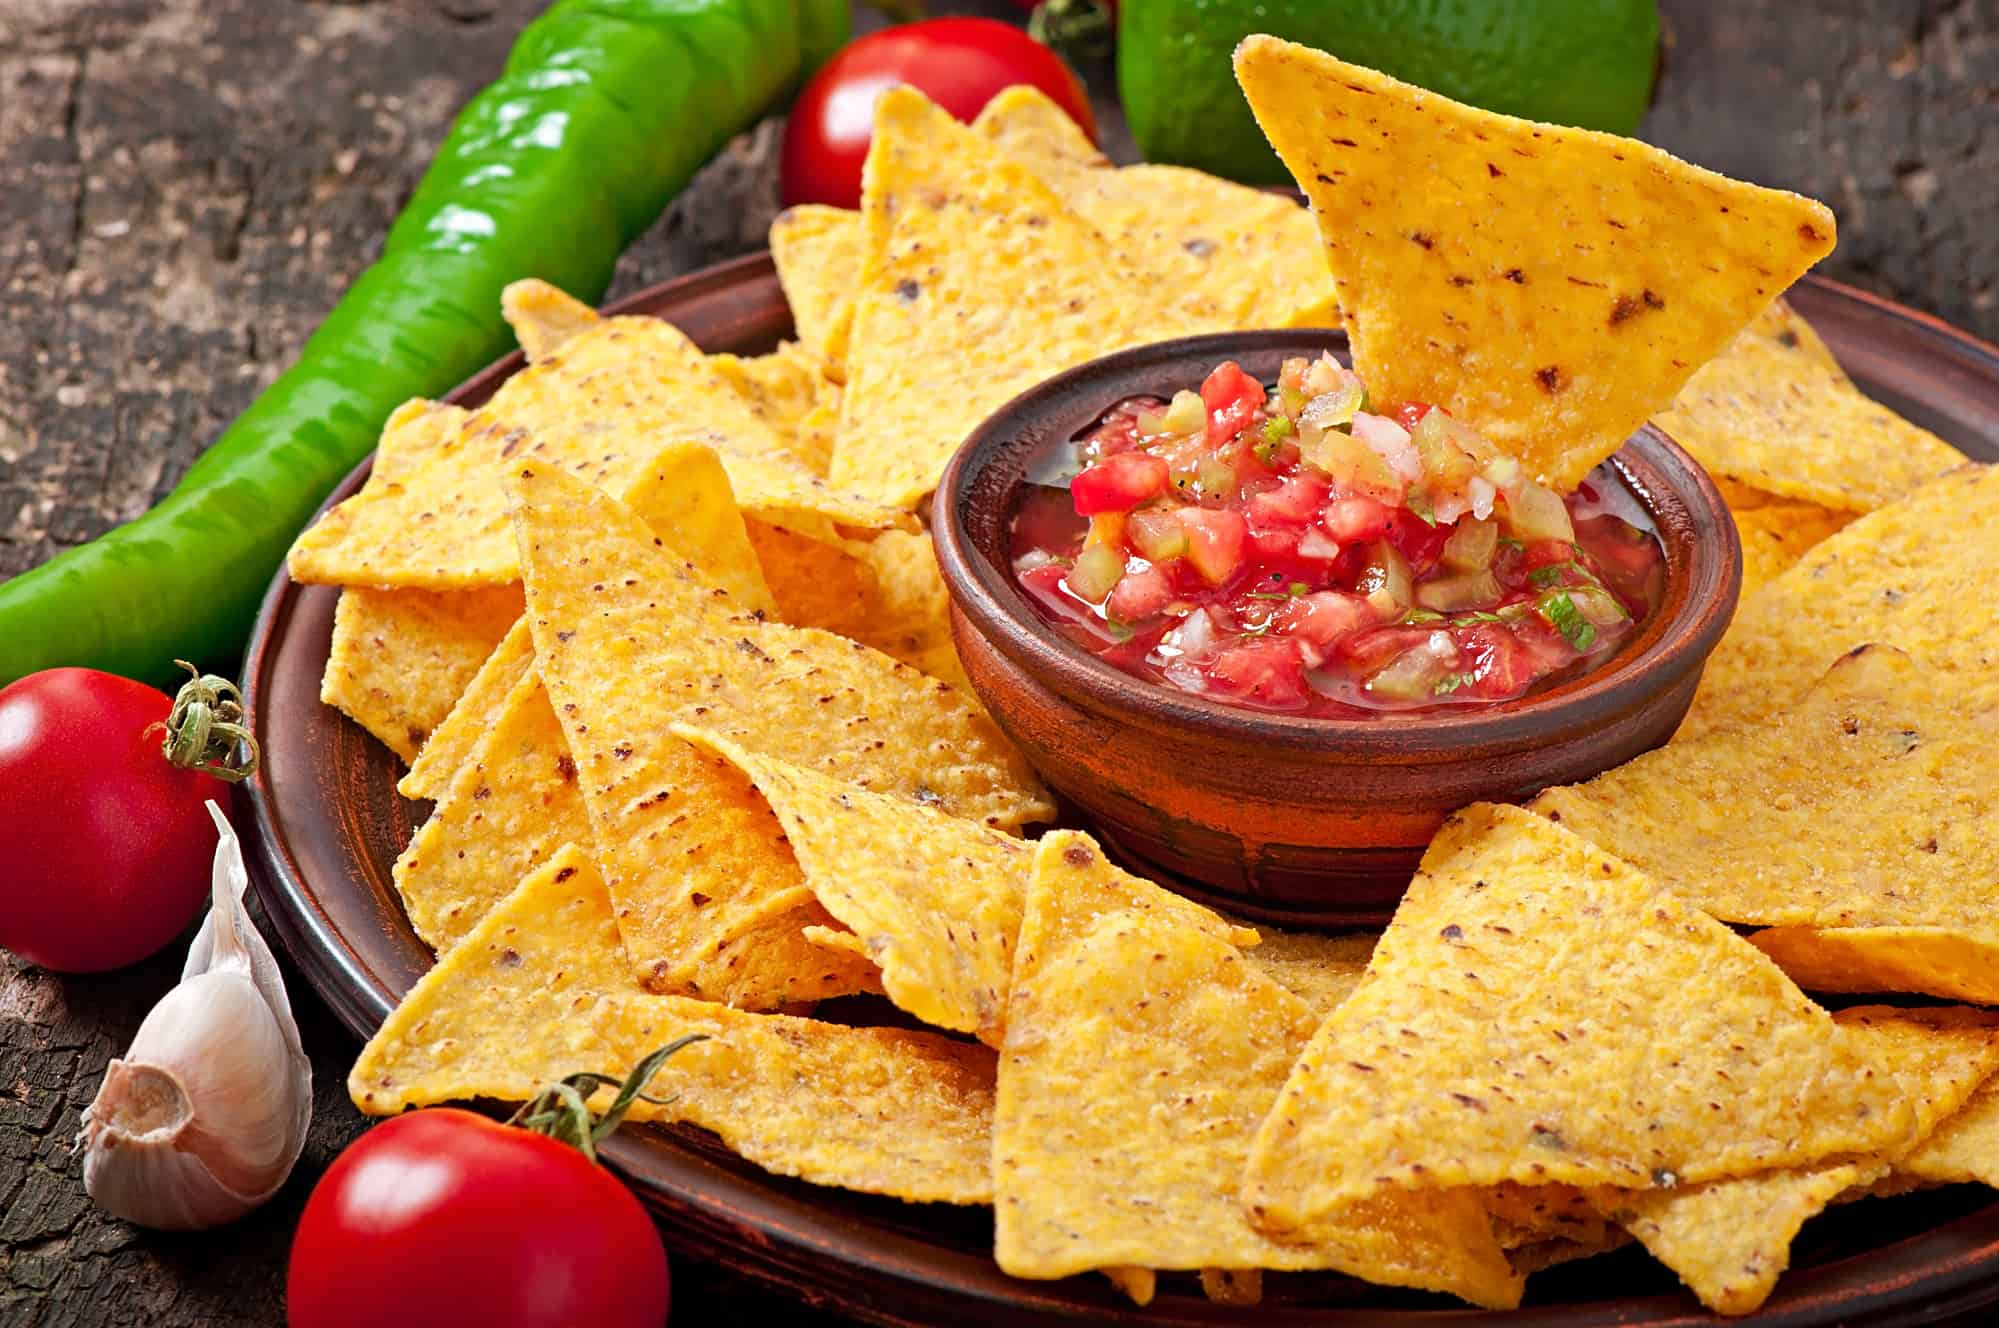 Chips & salsa at a party